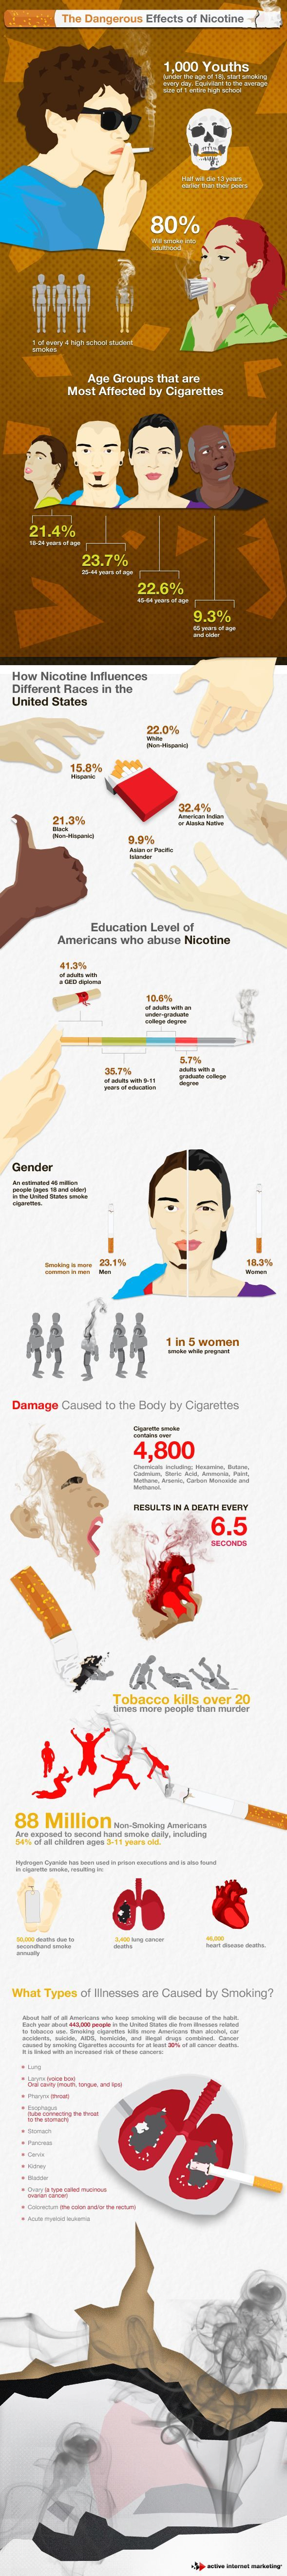 The Dangerous Effects of #Nicotine #infographic - Learn More at delrayrecoverycenter.com